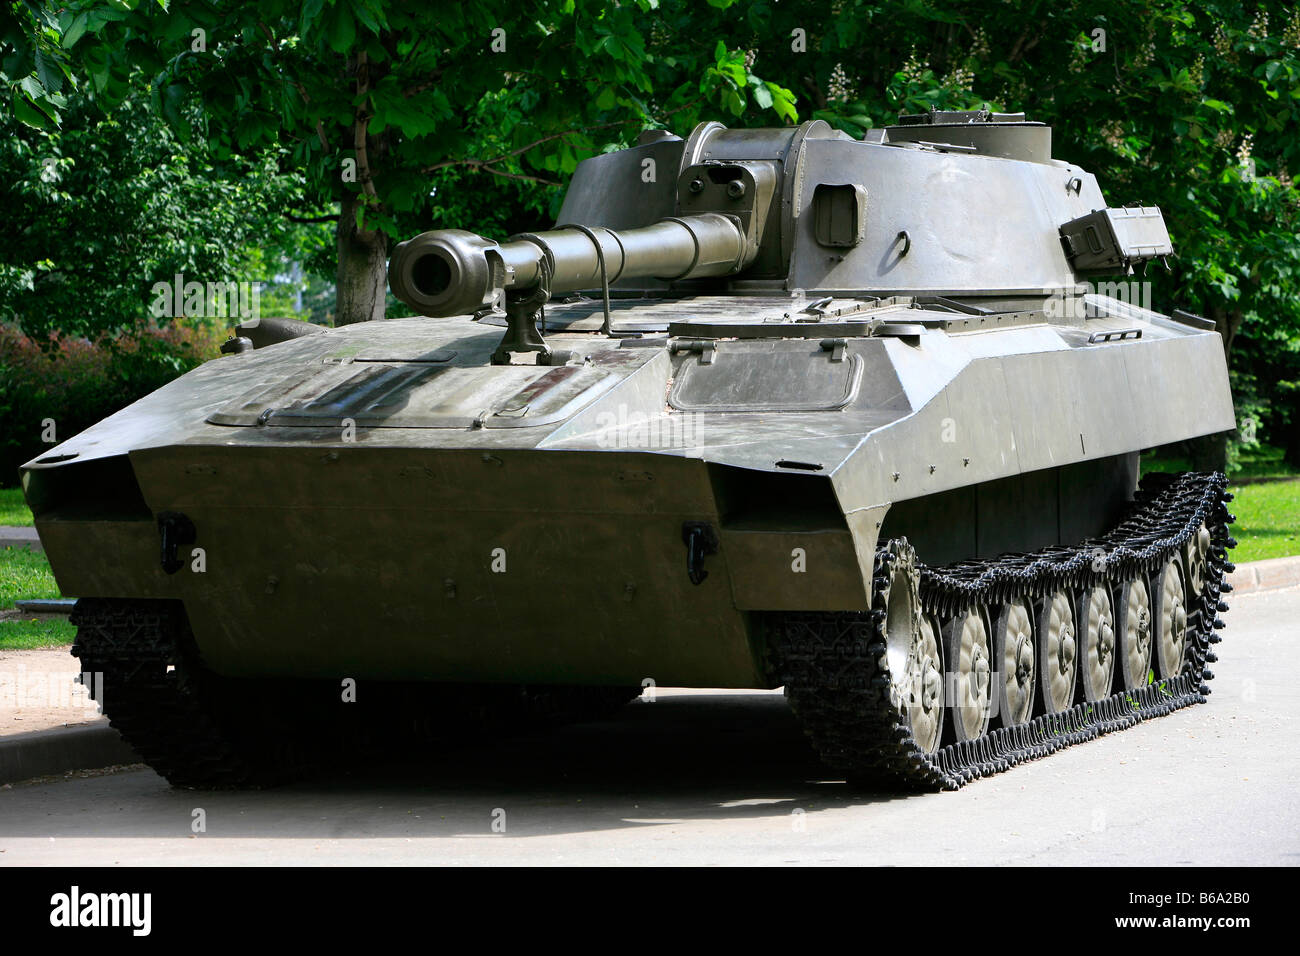 World War Ii Soviet Tank At Victory Park In Moscow Russia Stock Photo Alamy